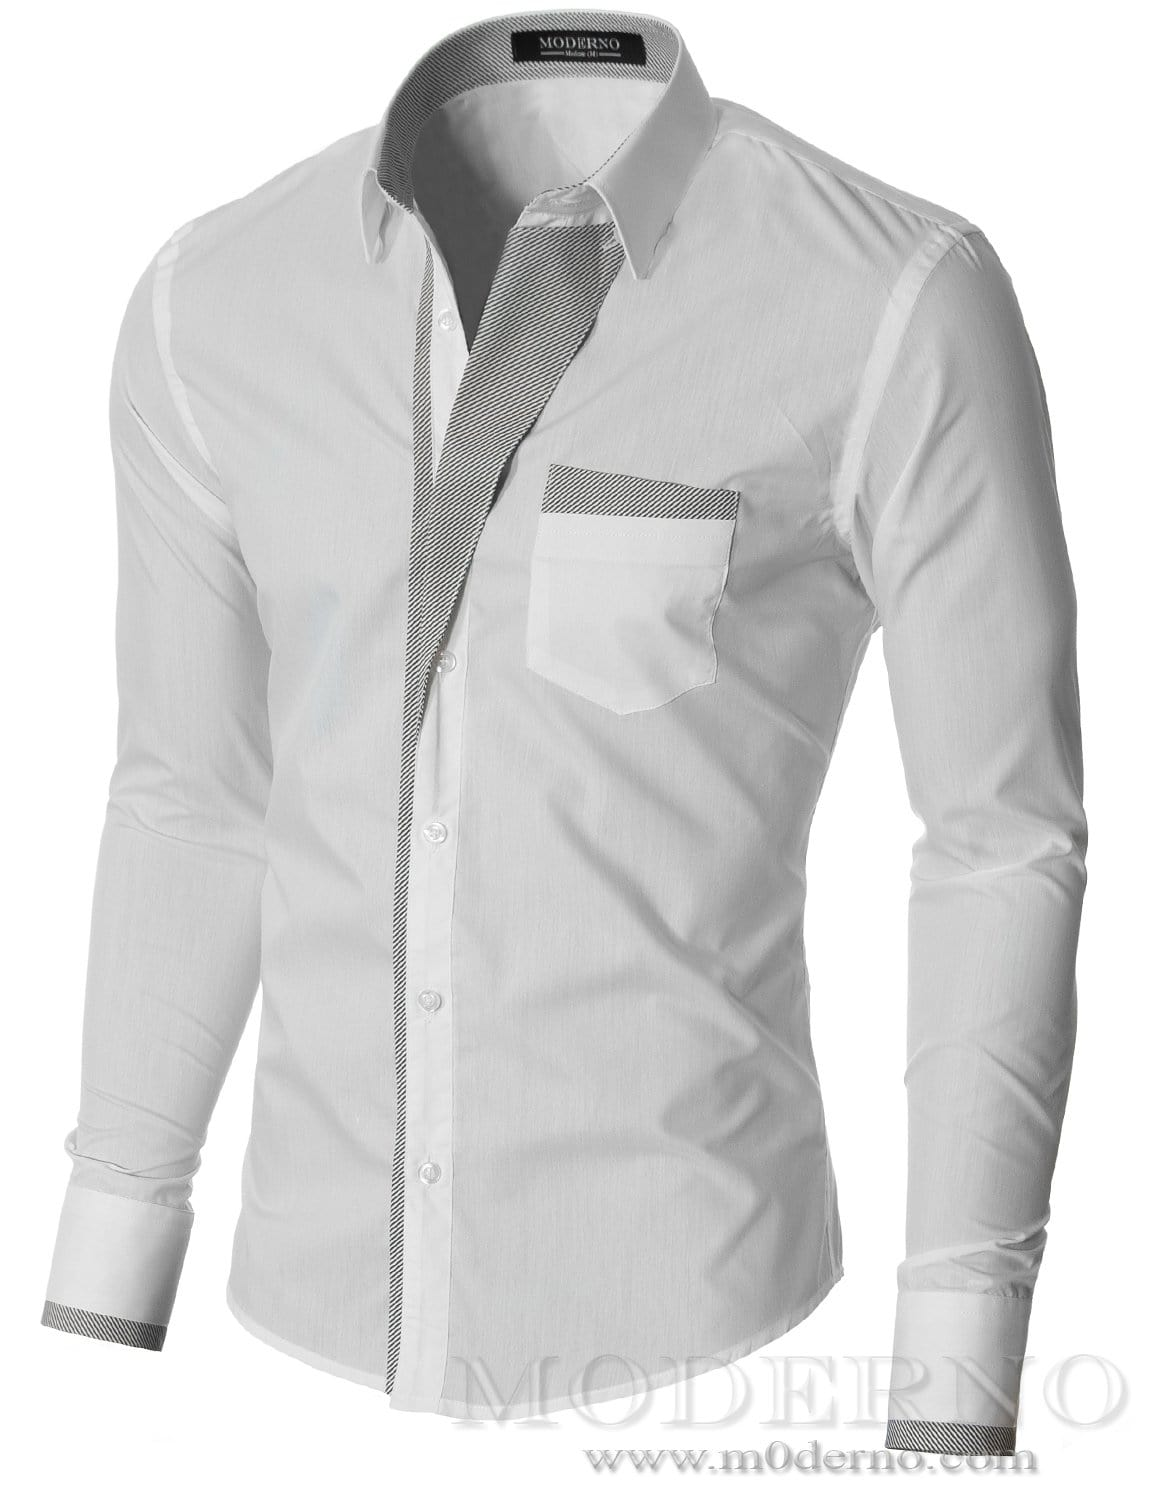 Slim fit mens white button down shirt by moderno vgds41ls for Athletic fit button down shirts